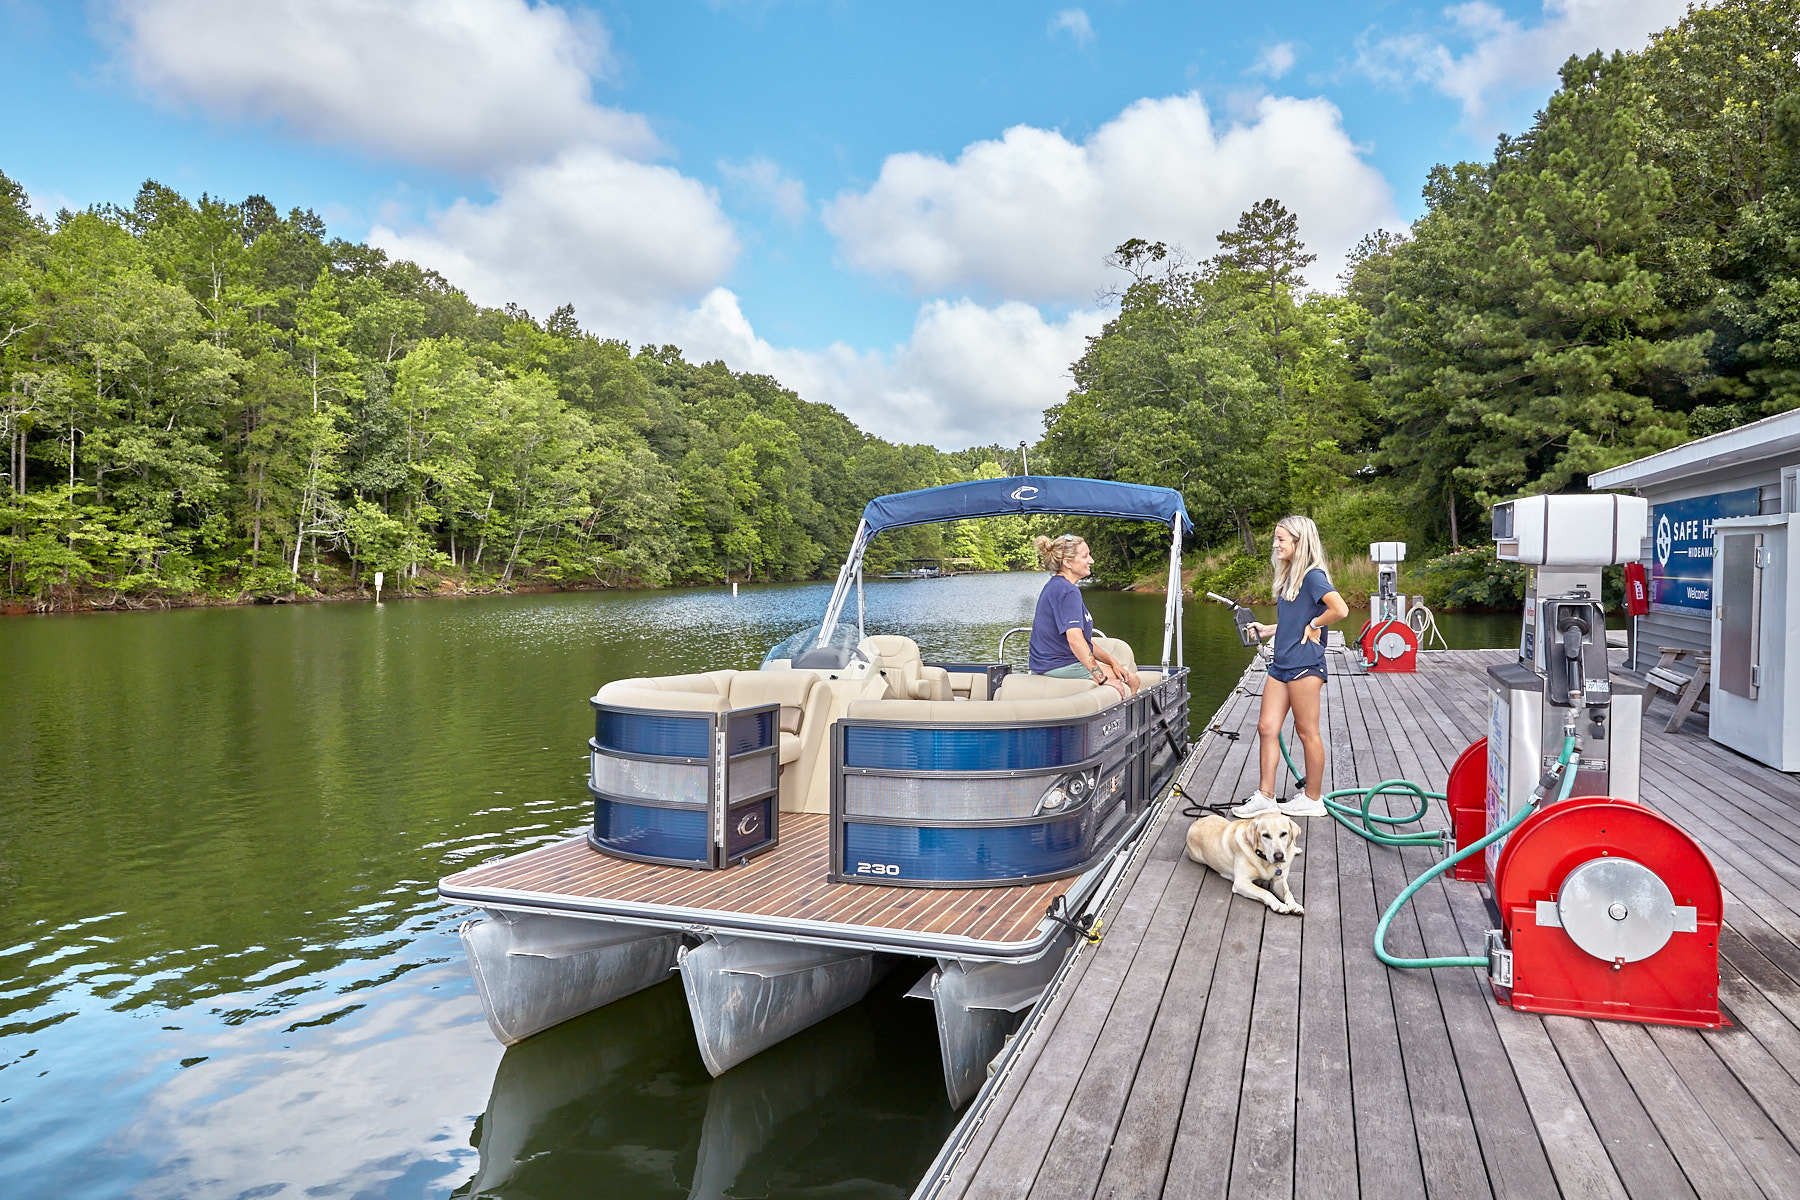 FLOWERY BRANCH, GA - July 8: Boat fueling at Safe Harbor Hideaway Bay in Flowery Branch, GA on July 8, 2020. (Photo by Craig Bromley/Getty Images for Safe Harbor Marinas)